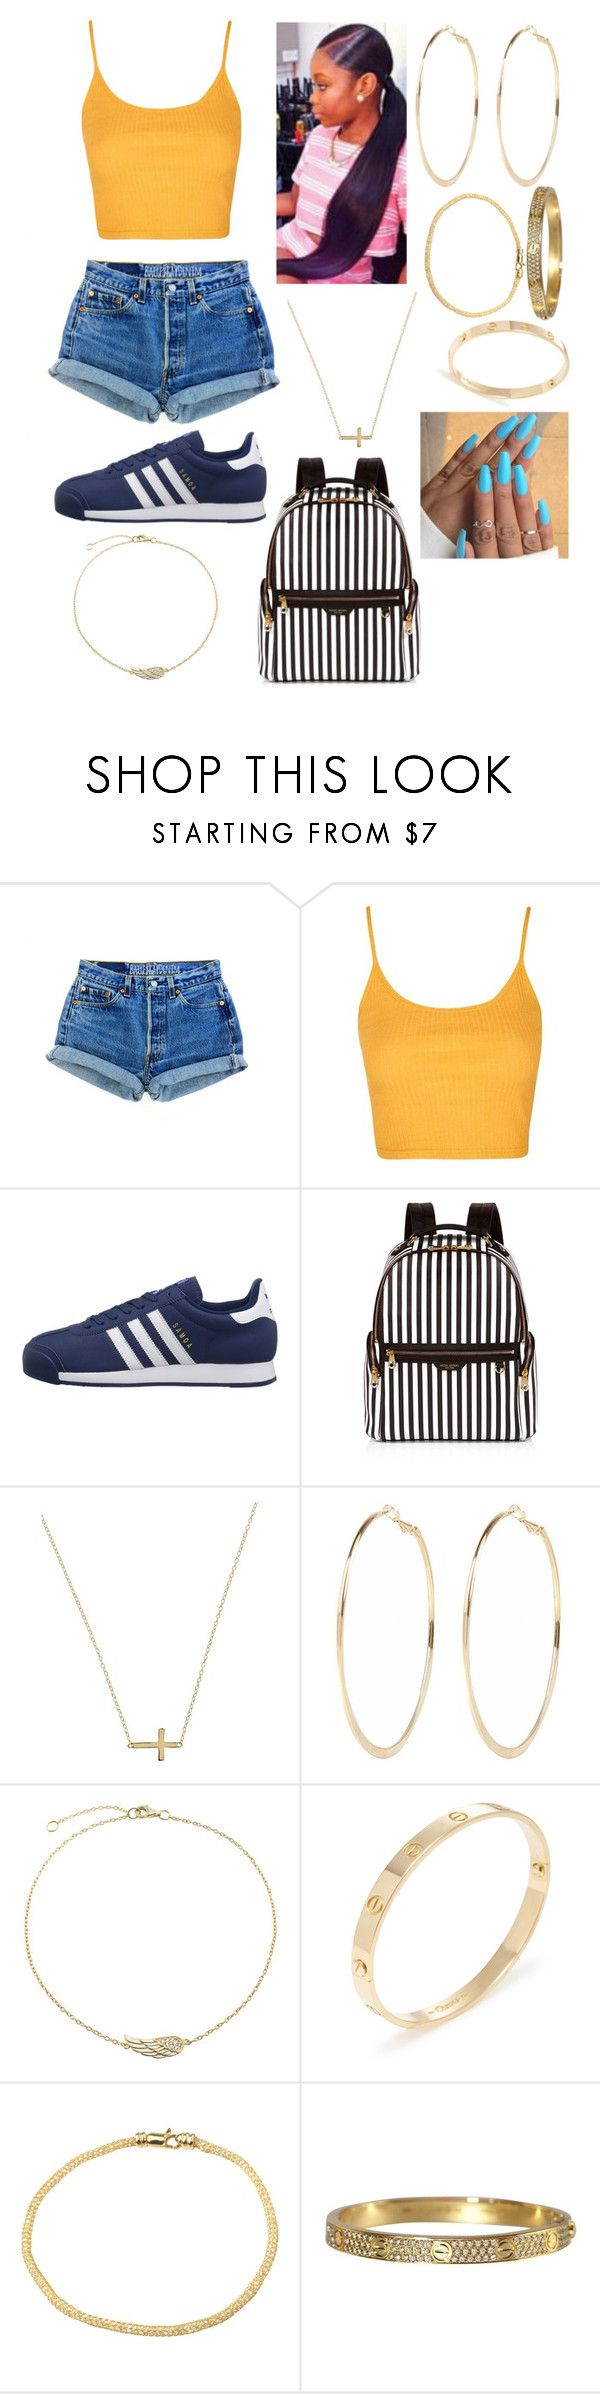 """""""Untitled #49"""" by isabelleeeeeeee ❤ liked on Polyvore featuring Topshop, adidas Originals, Henri Bendel, Lord & Taylor, River Island, Bling Jewelry, Cartier and A B Davis"""